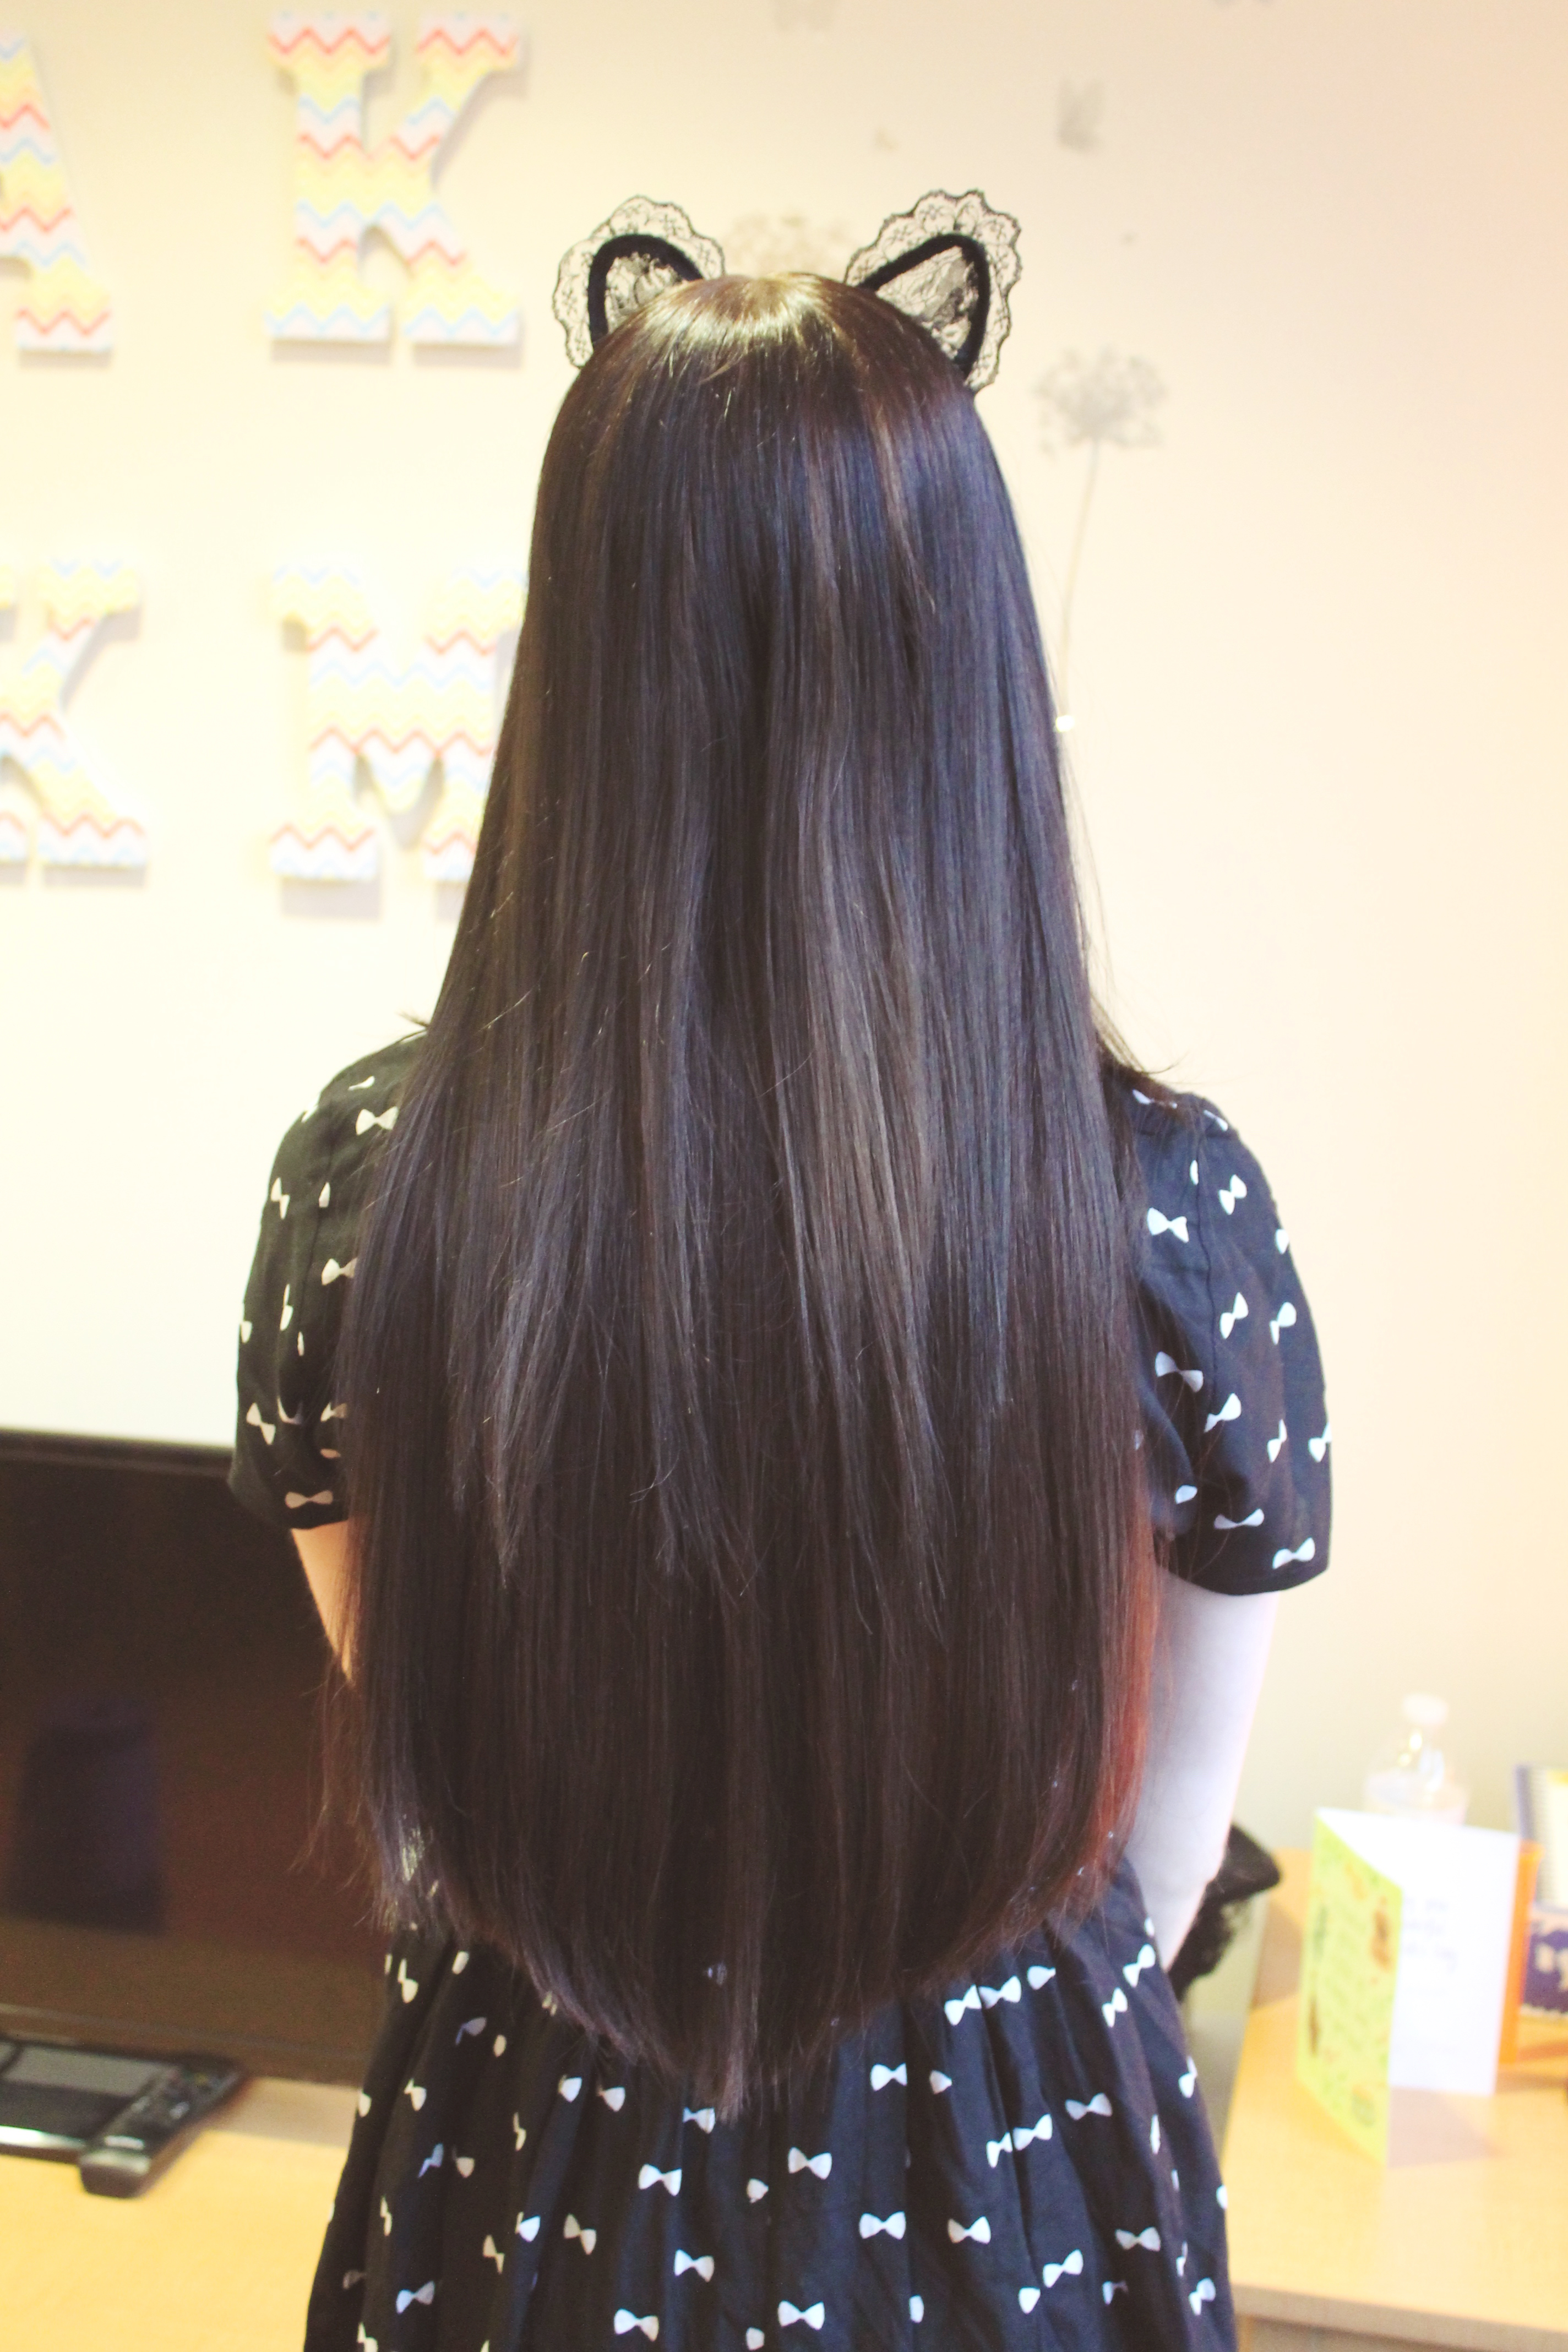 Hairextensionloves hidden halo extensions a review of miracle hairstylist hairlong2 pmusecretfo Image collections